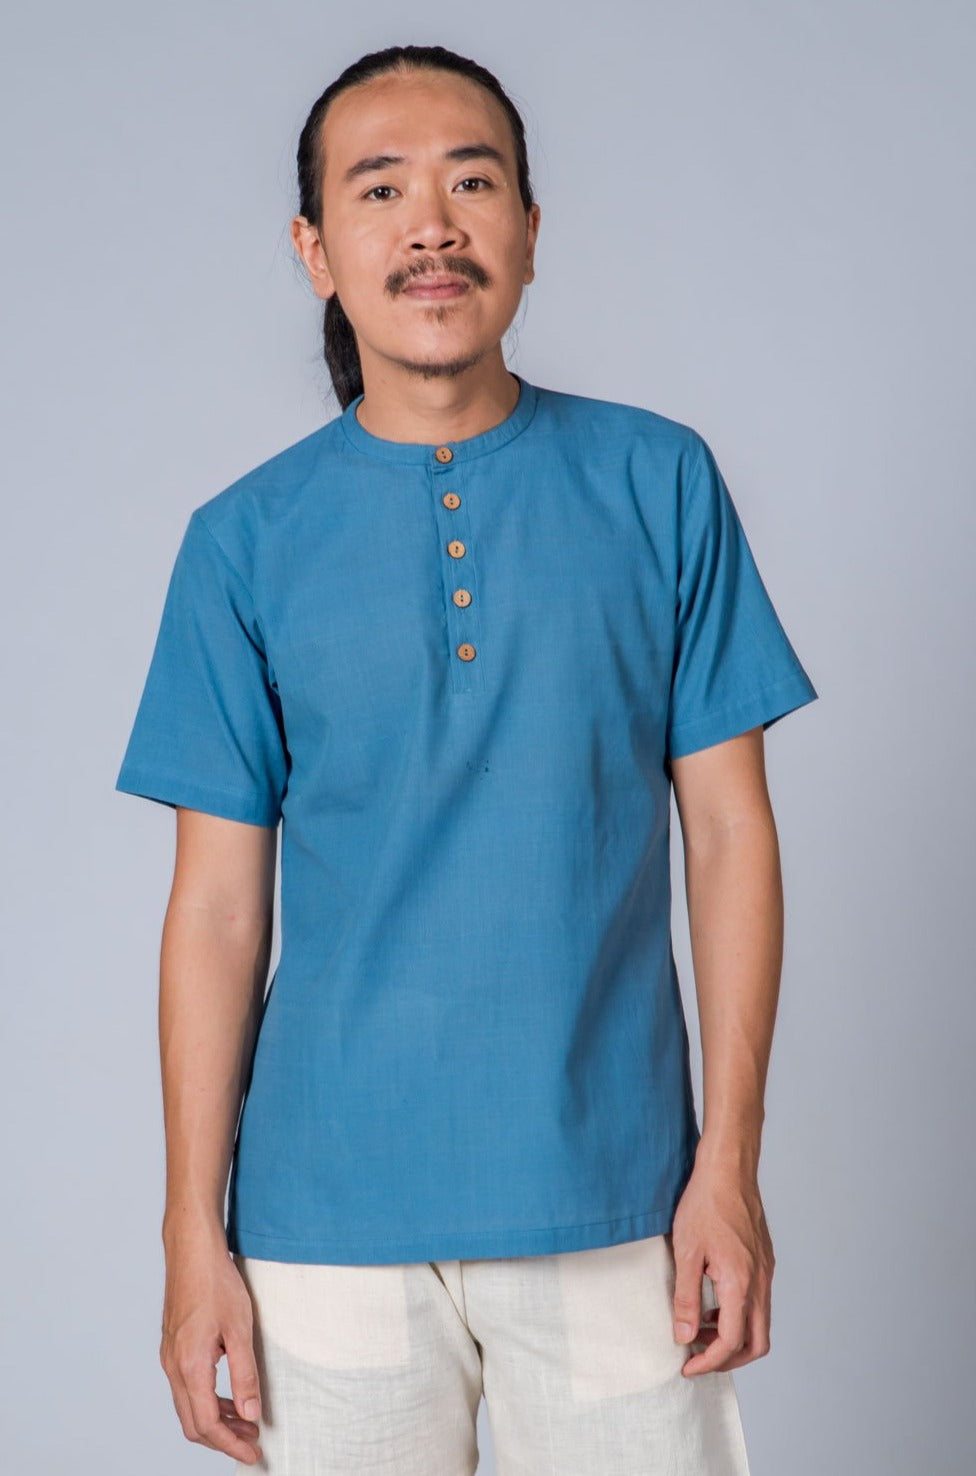 Light Blue Handwoven Shirt - MANAV - Upasana Design Studio